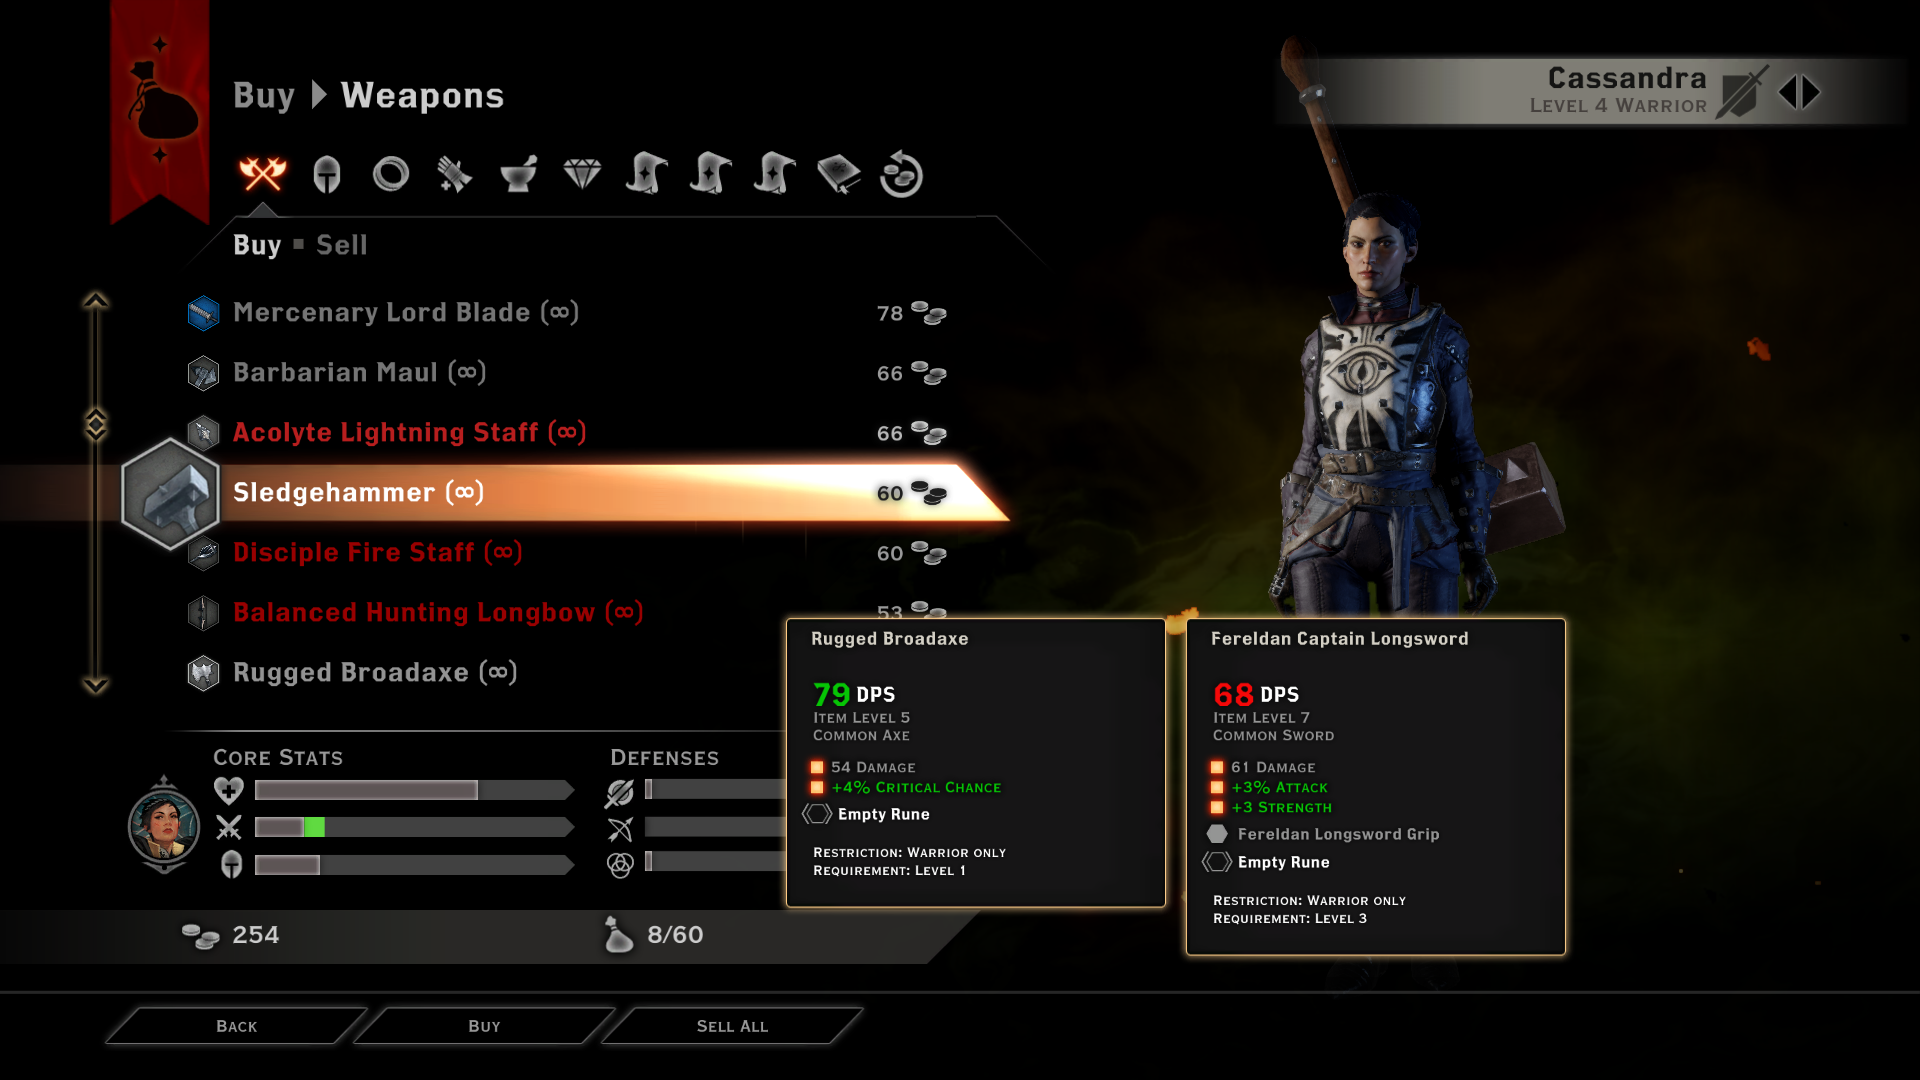 http://www.rage3d.com/articles/gaming/dragon_age_inquisition_tech_review/pics/dai%20(2).png